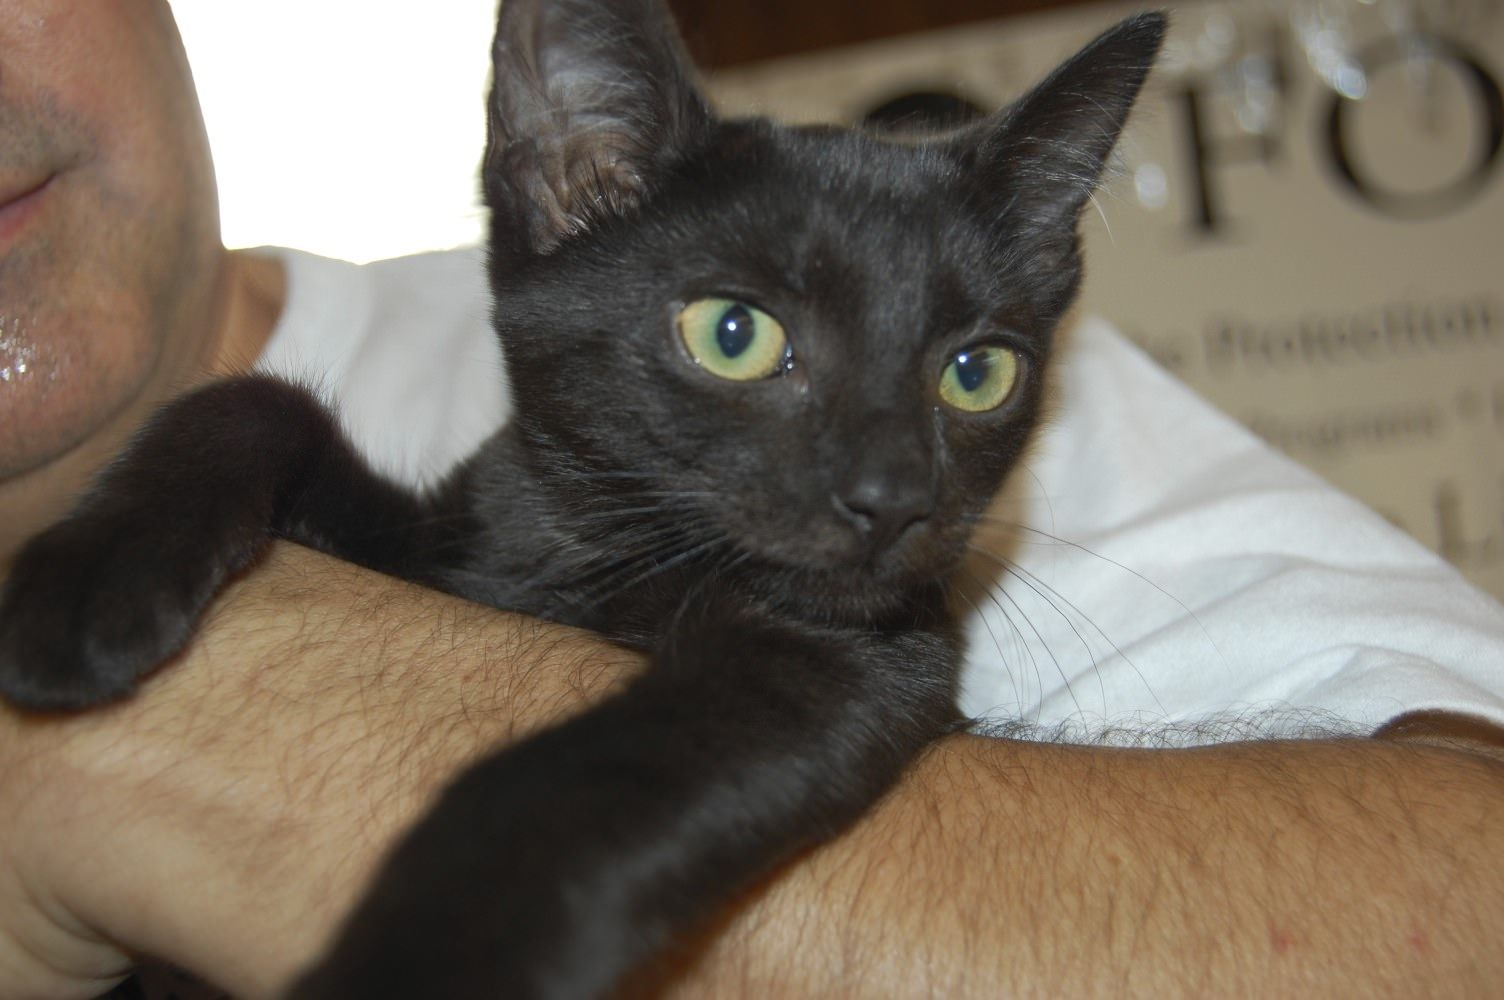 This black cat is one of many cats and kittens that were